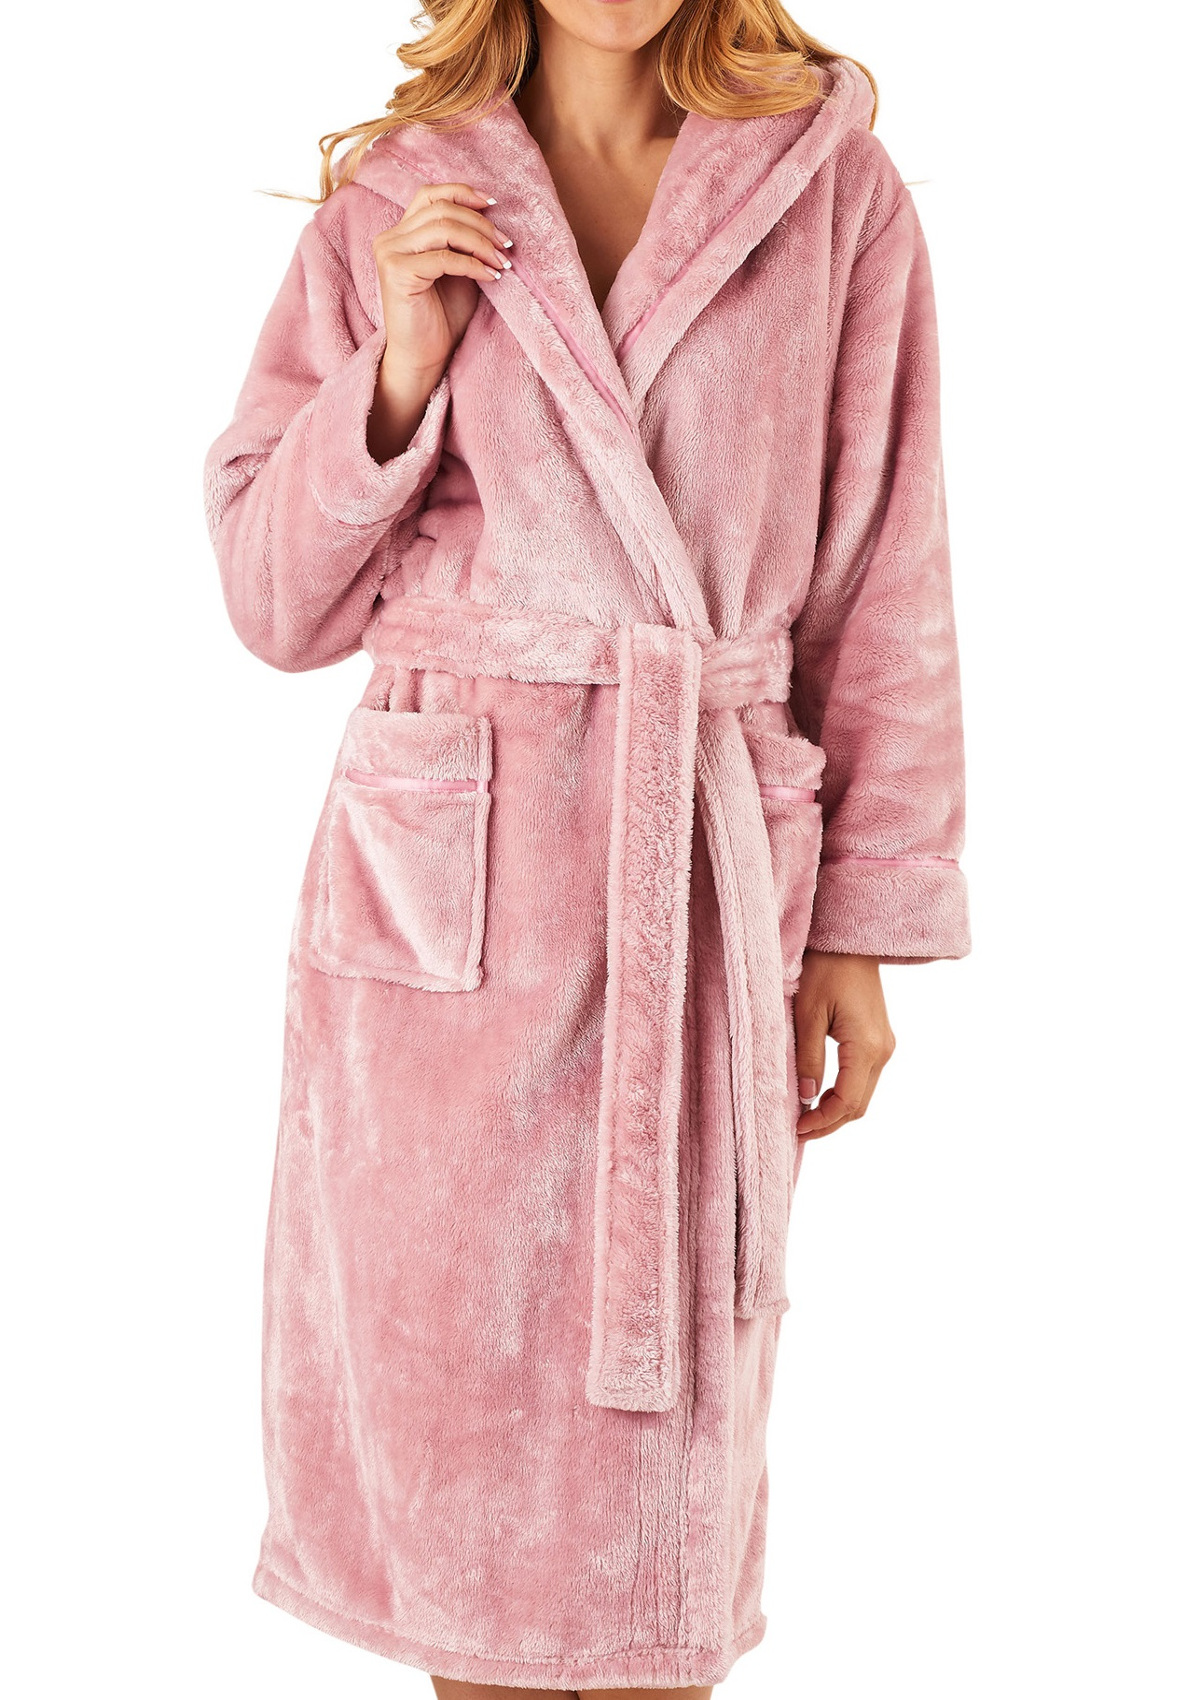 Slenderella Womens Super Soft Thick Fleece Dressing Gown Luxury ...